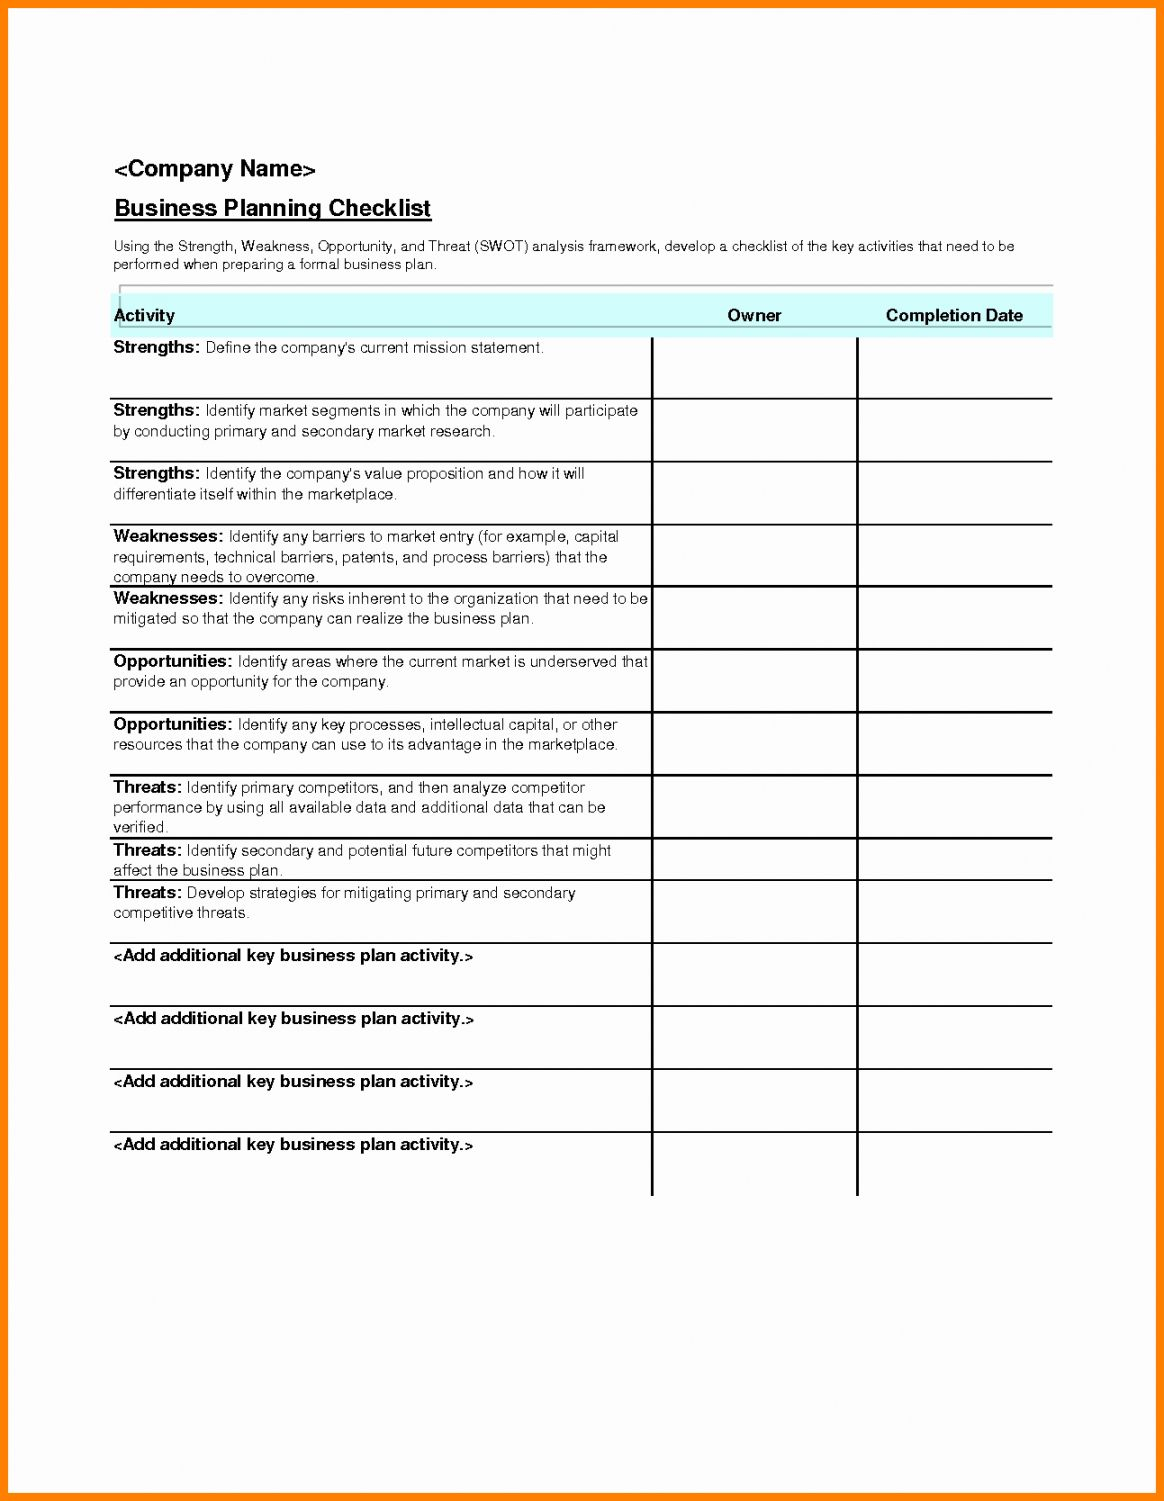 Get Our Sample Of Corporate Event Checklist Template In 2020 for Corporate Event Planning Checklist Template